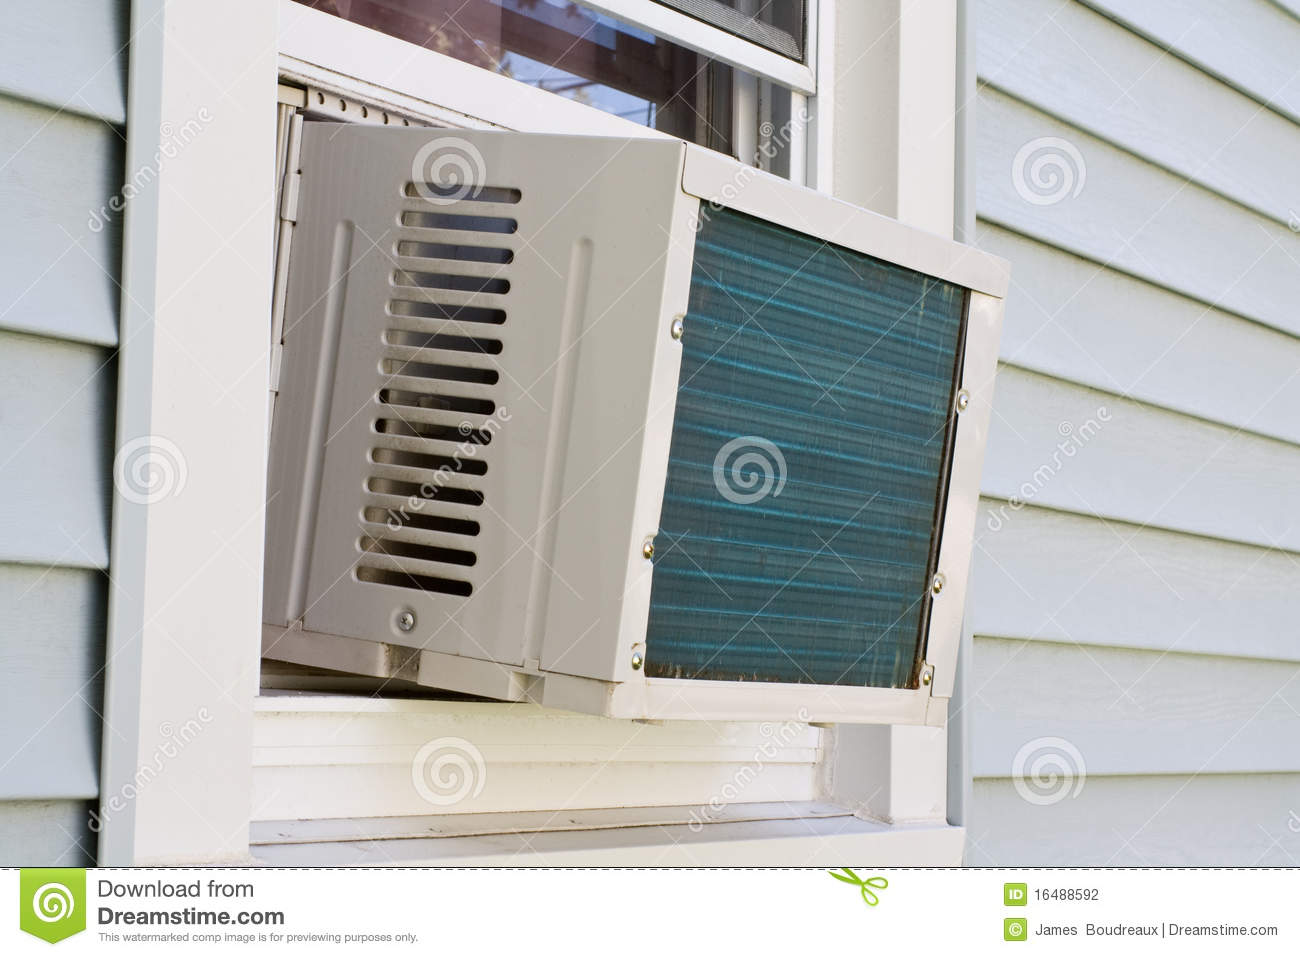 Window mounted air conditioner stock photography image for 17 wide window air conditioner